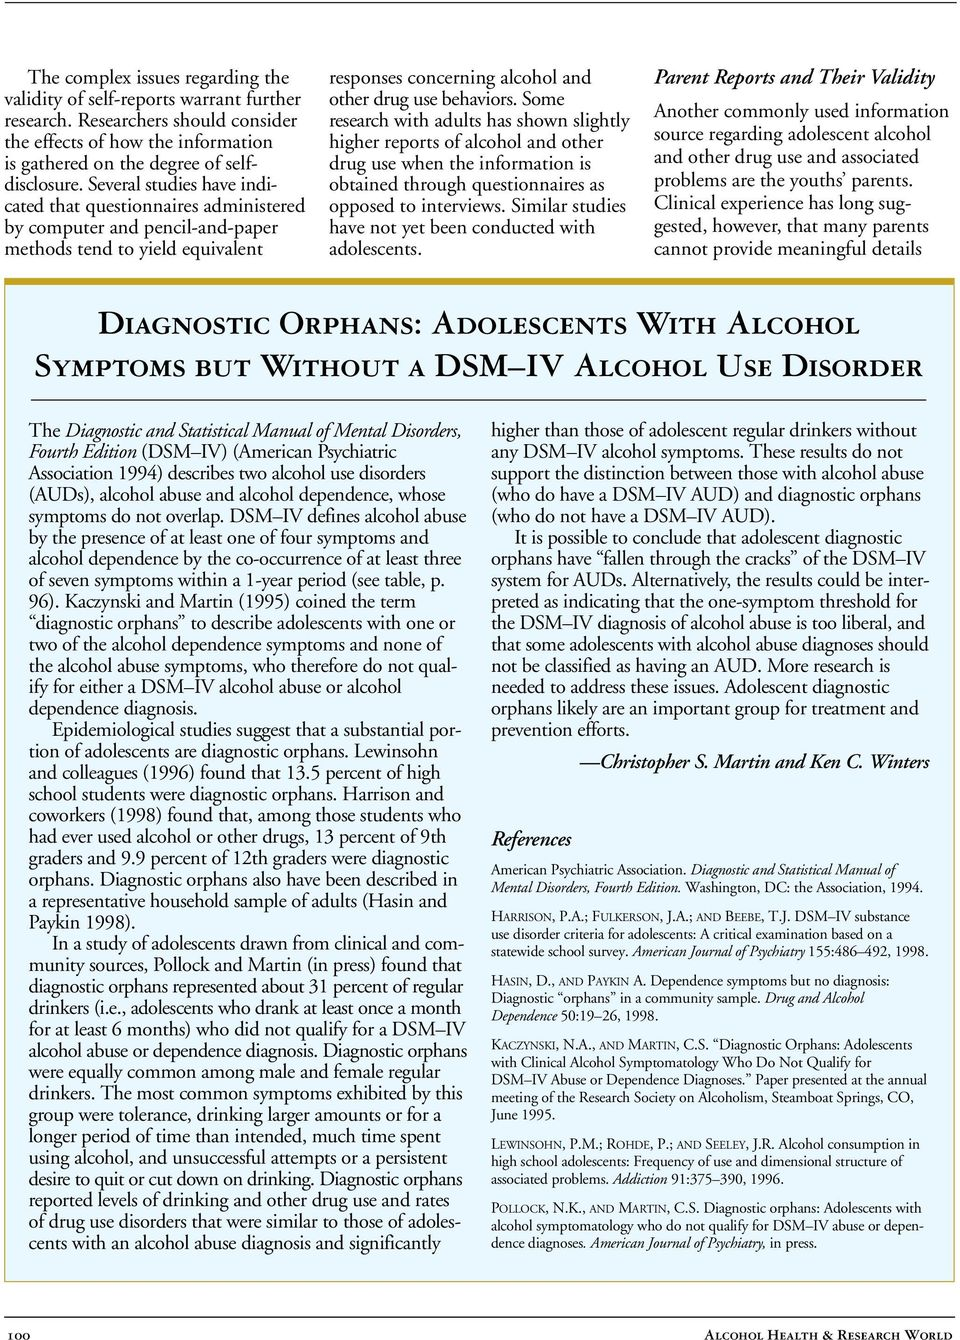 Some research with adults has shown slightly higher reports of alcohol and other drug use when the information is obtained through questionnaires as opposed to interviews.